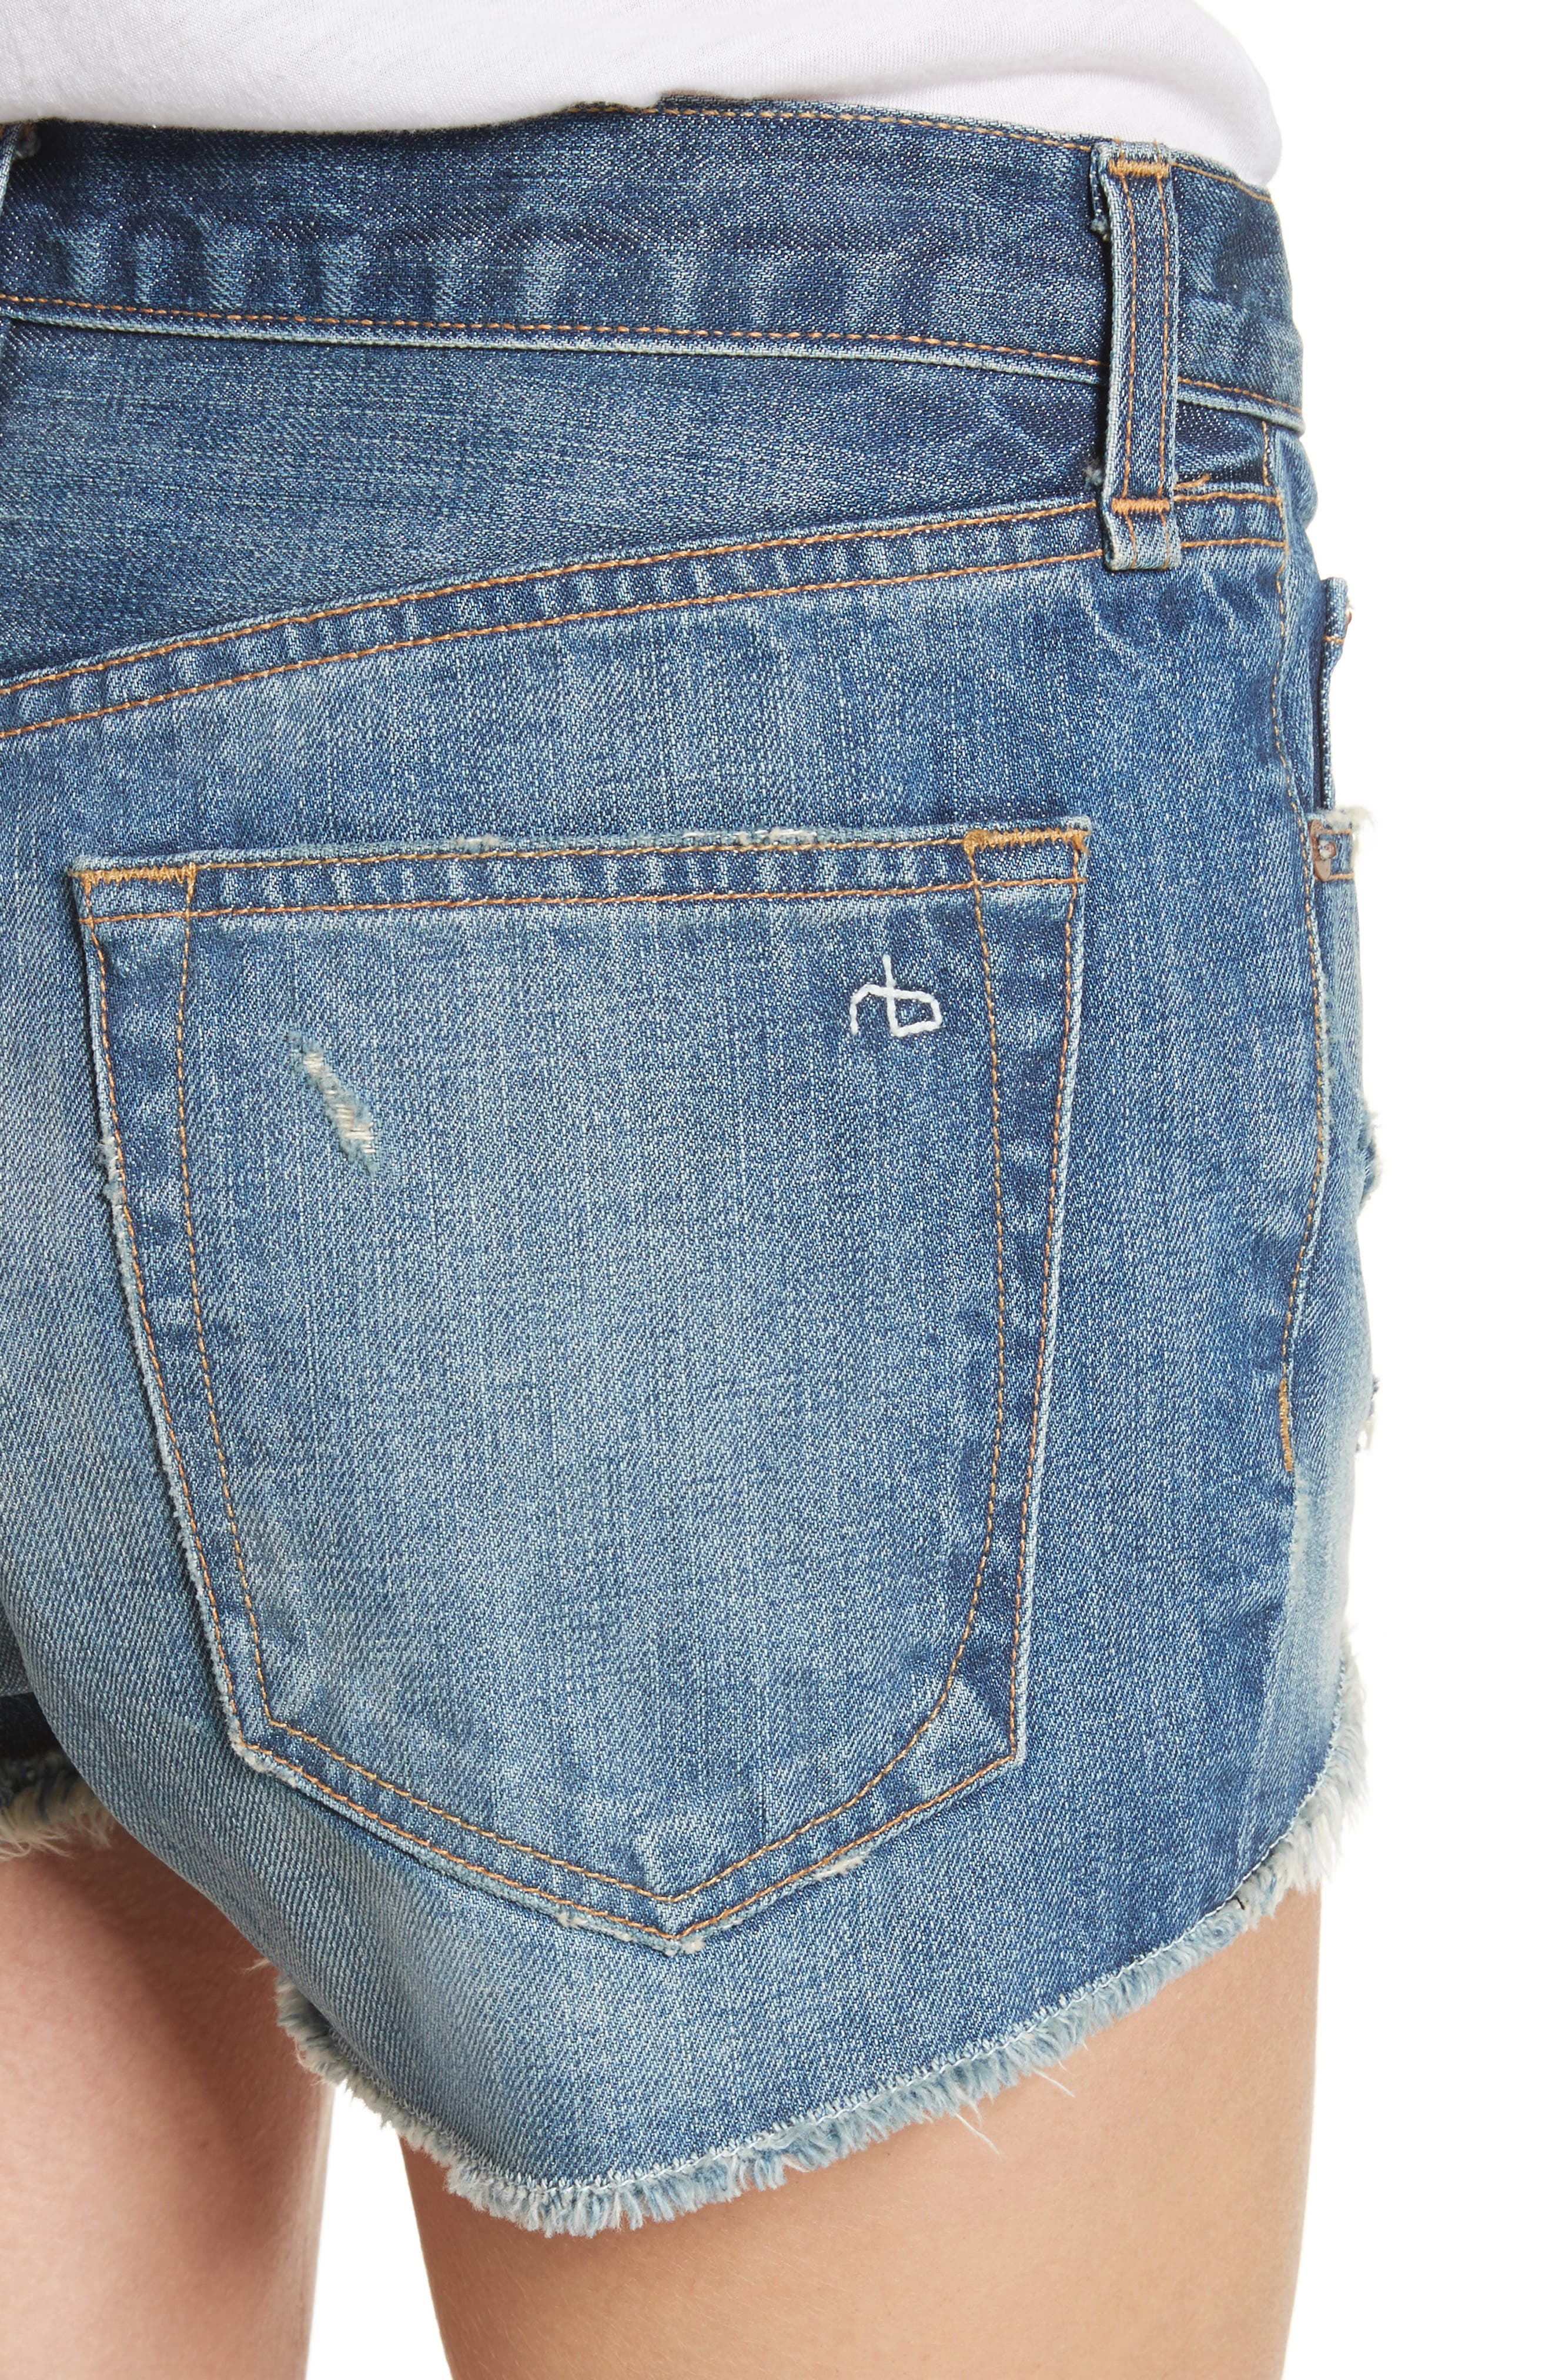 Margaux High Waist Denim Shorts,                             Alternate thumbnail 4, color,                             Rocka Rolla